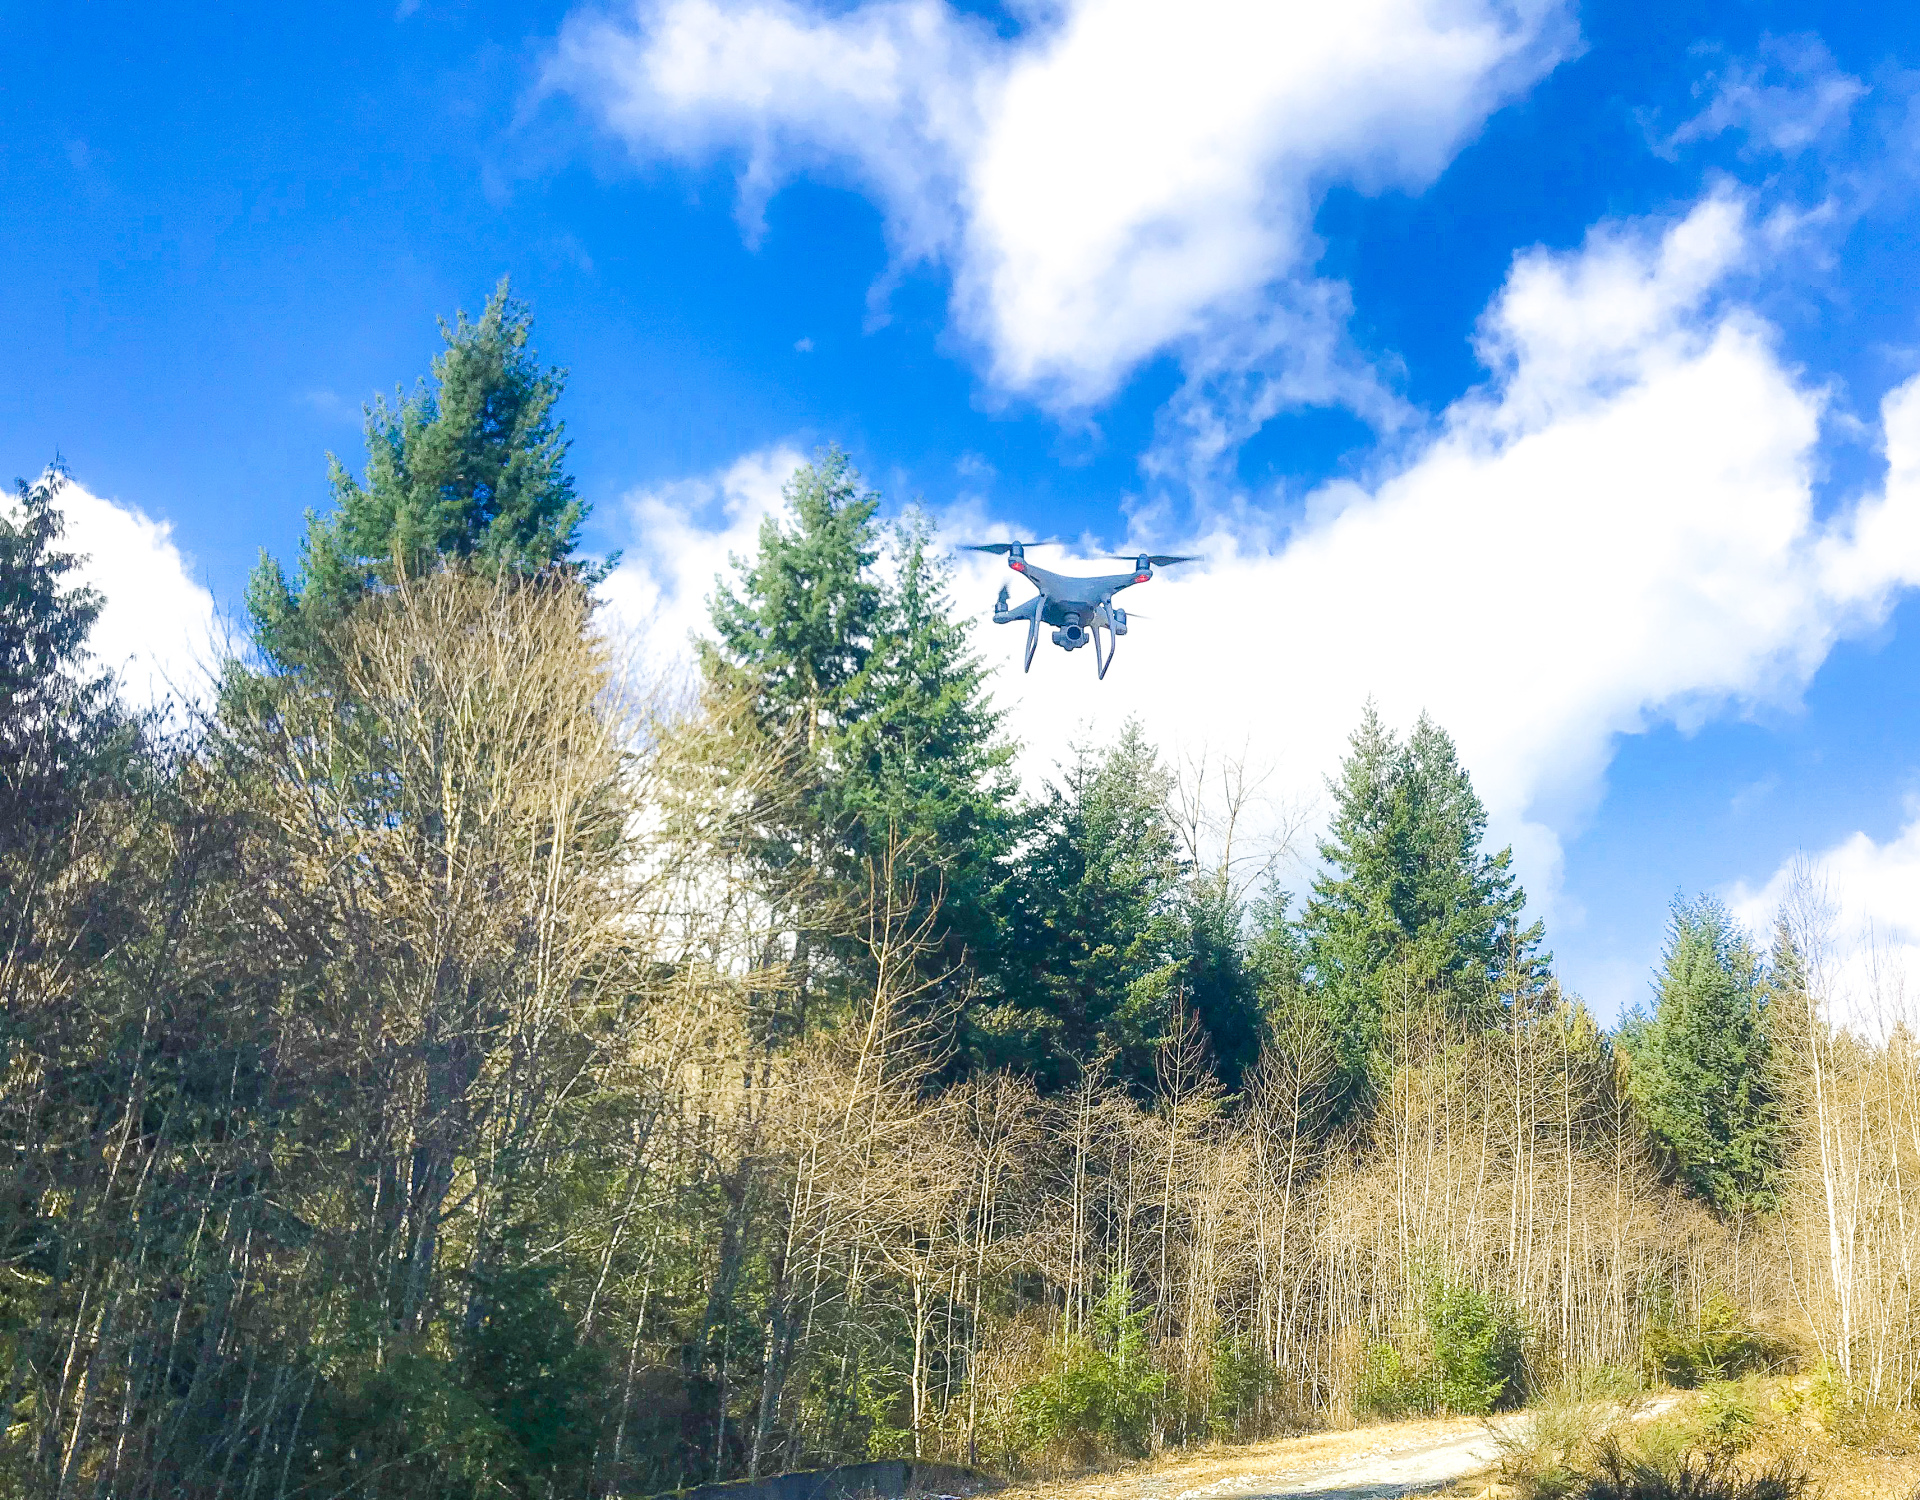 Exciting Times For Archaeologists With Drones And Sensors